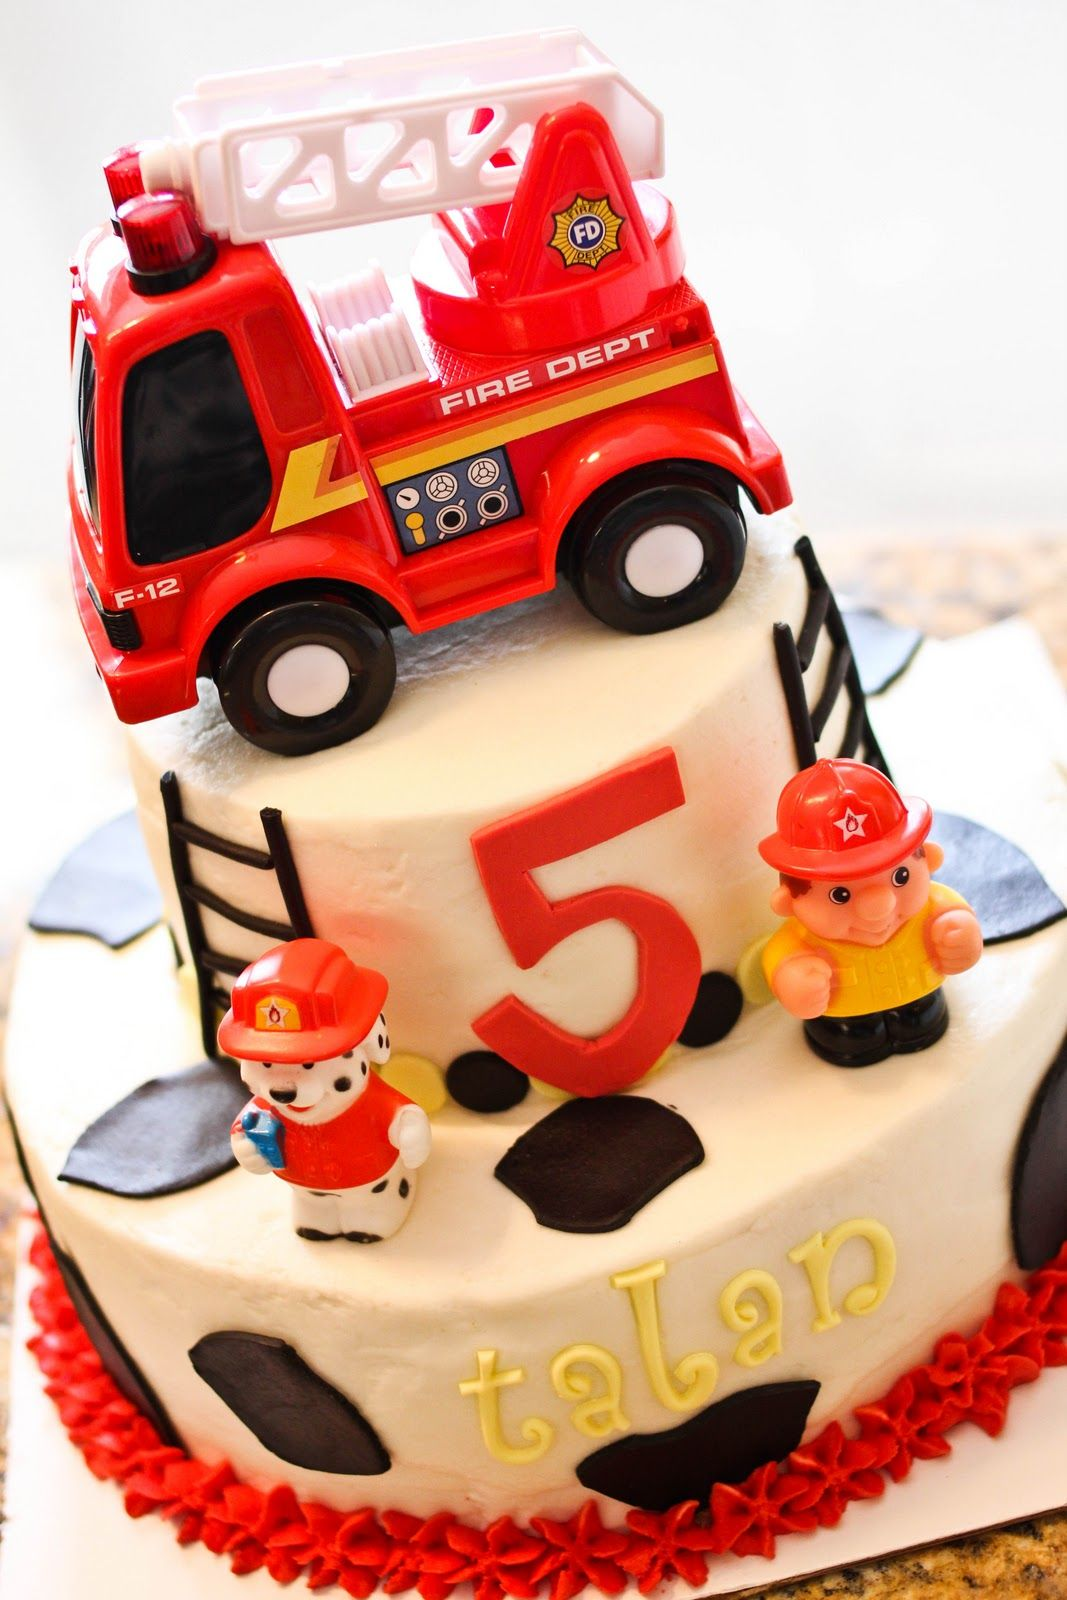 Dalmation Fire Truck Cake With Real Toy Fire Truck Firefighter